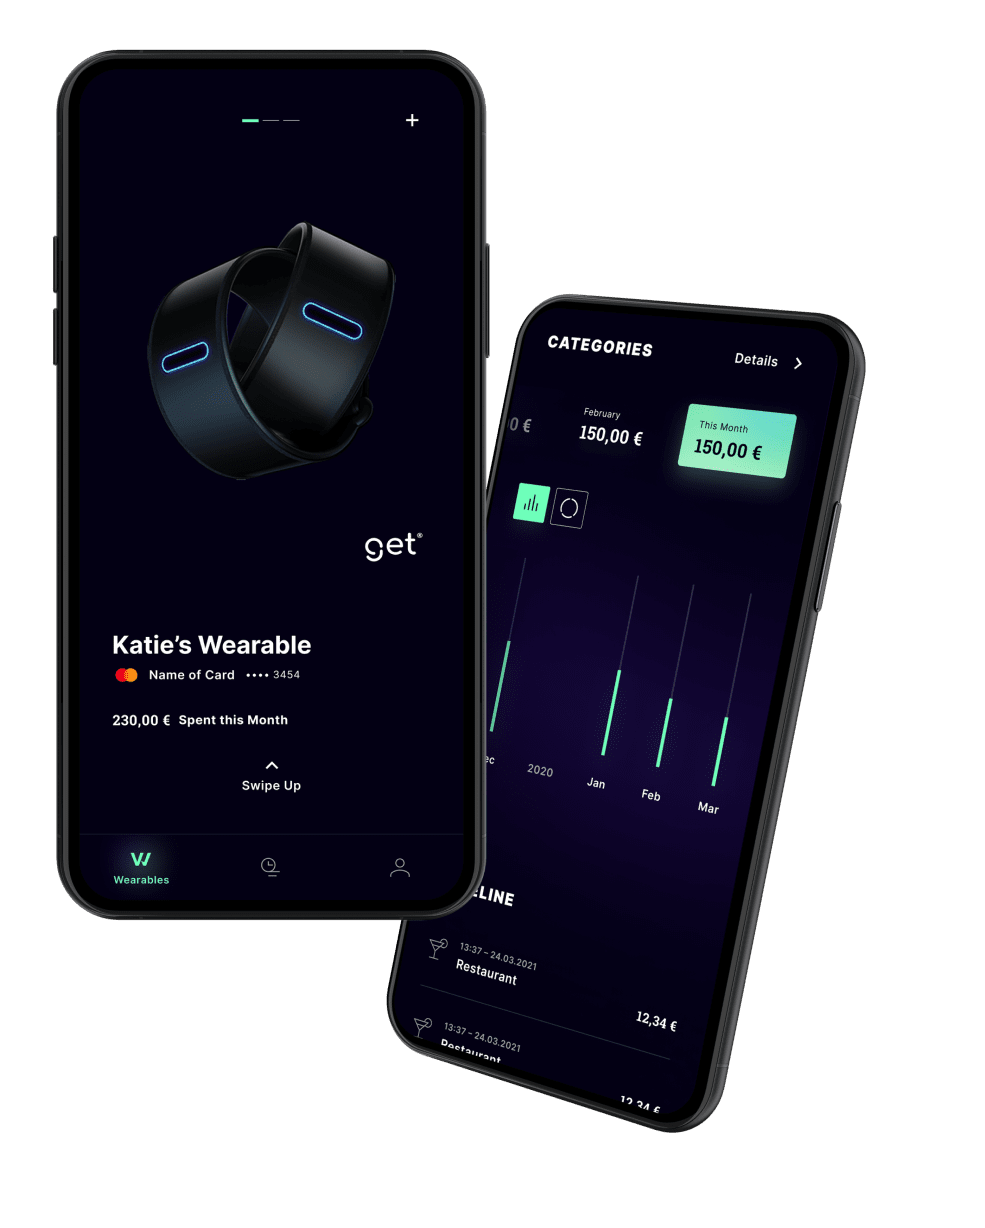 wearonize wallet app companion app for payment wearables